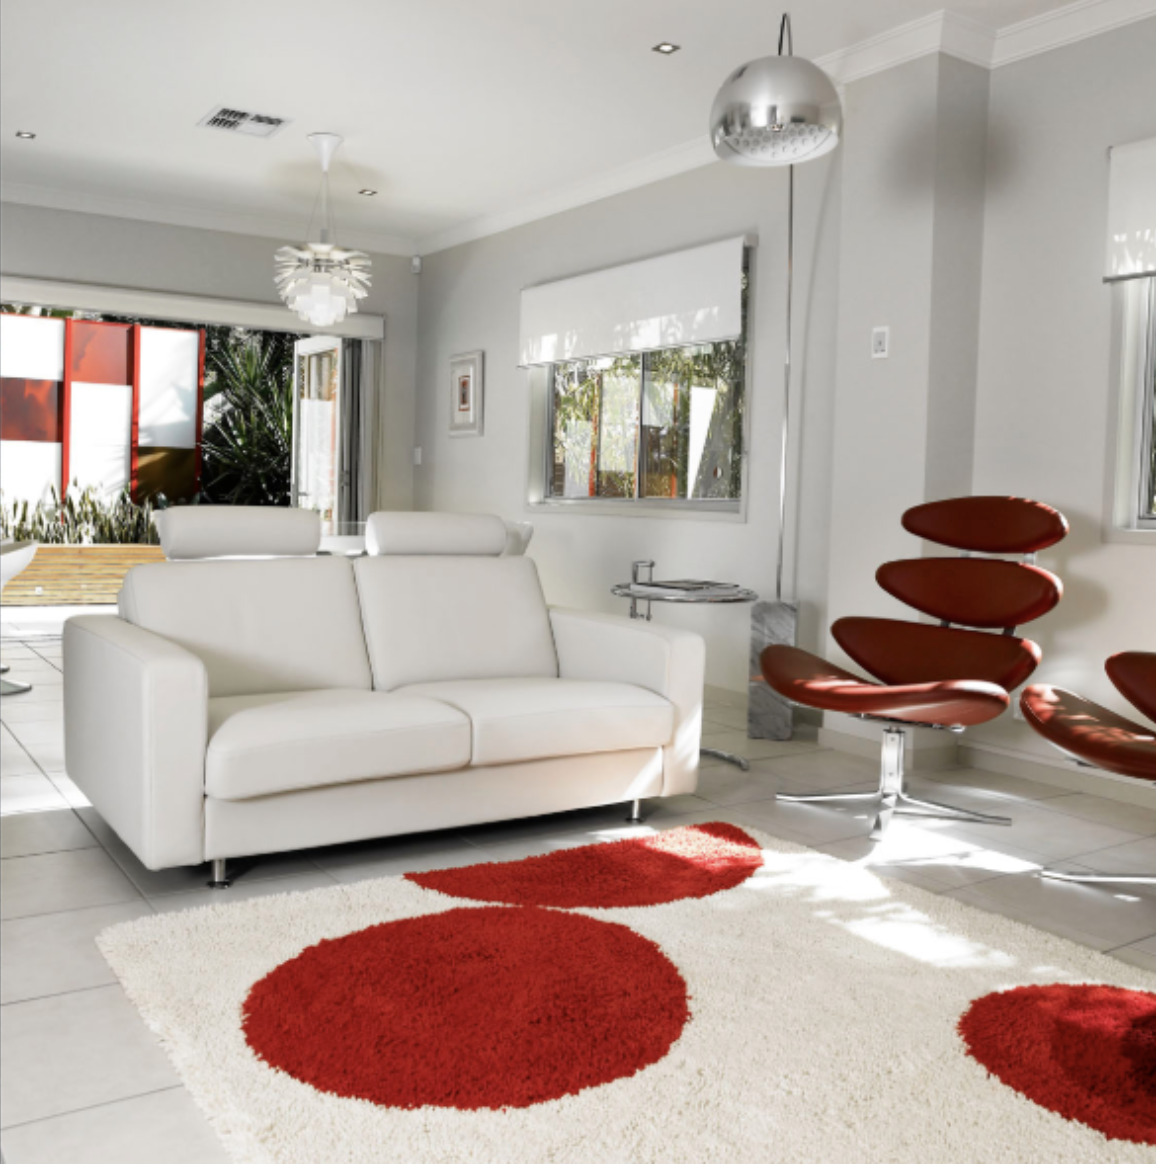 Interior Designers Is Great For Home Decorating